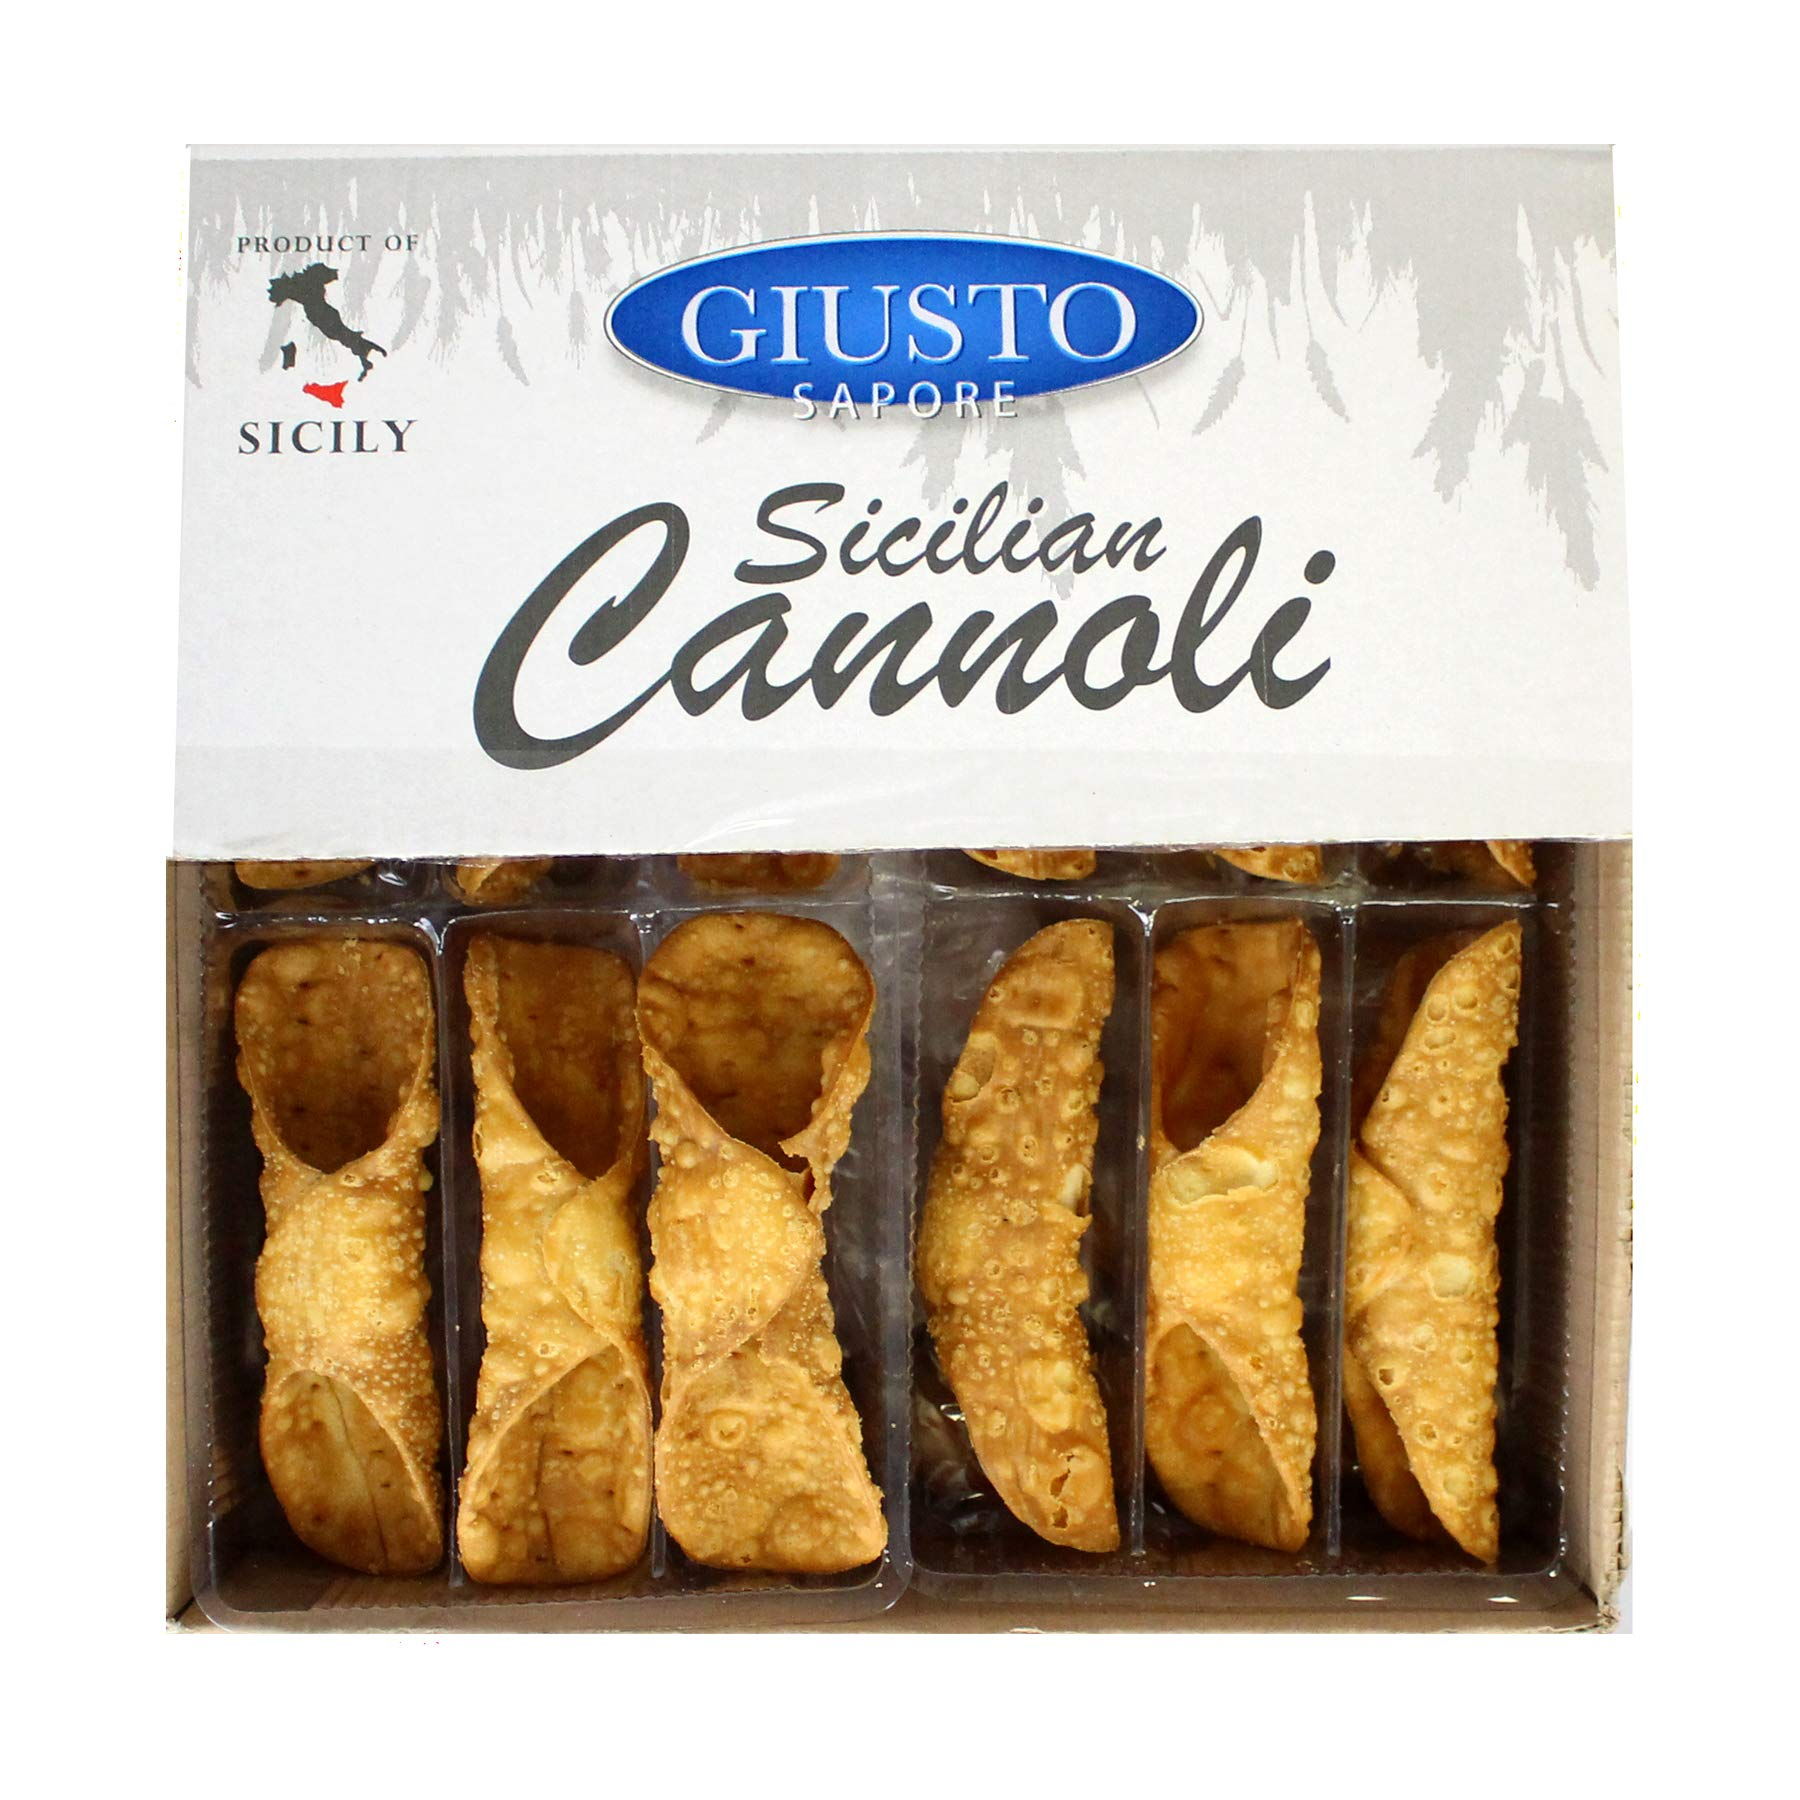 Giusto Sapore Sicilian Cannoli Shells - Large - 48 Shells - Imported from Italy and Family Owned Brand